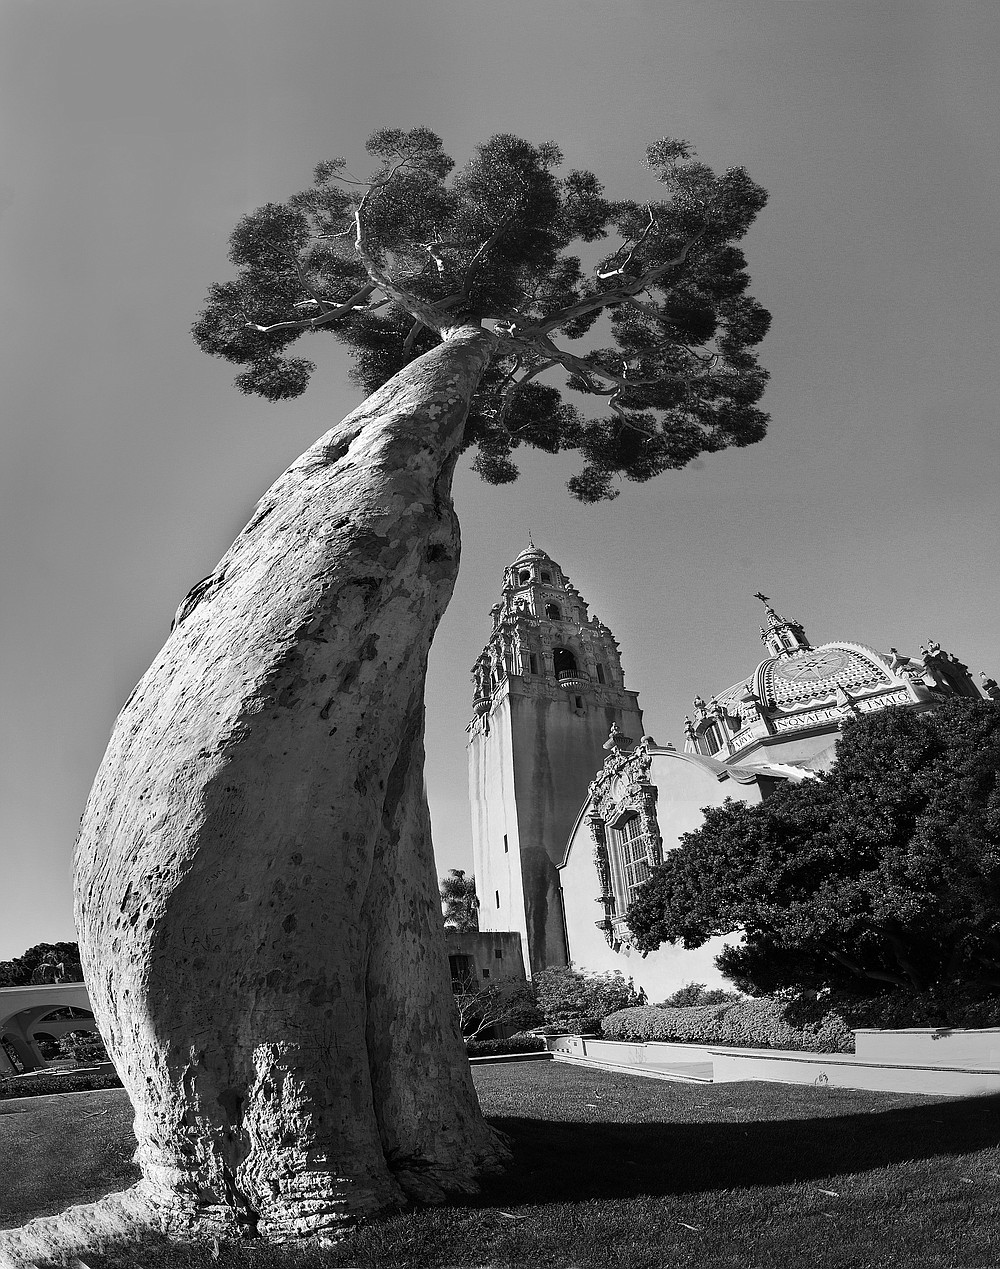 Balboa Park eucalyptus. During most of the 20th Century, the eucalyptuses seemed to be pest-free. Then in the 1980s, an Australian beetle began chewing its way through eucalyptus species in Southern California.